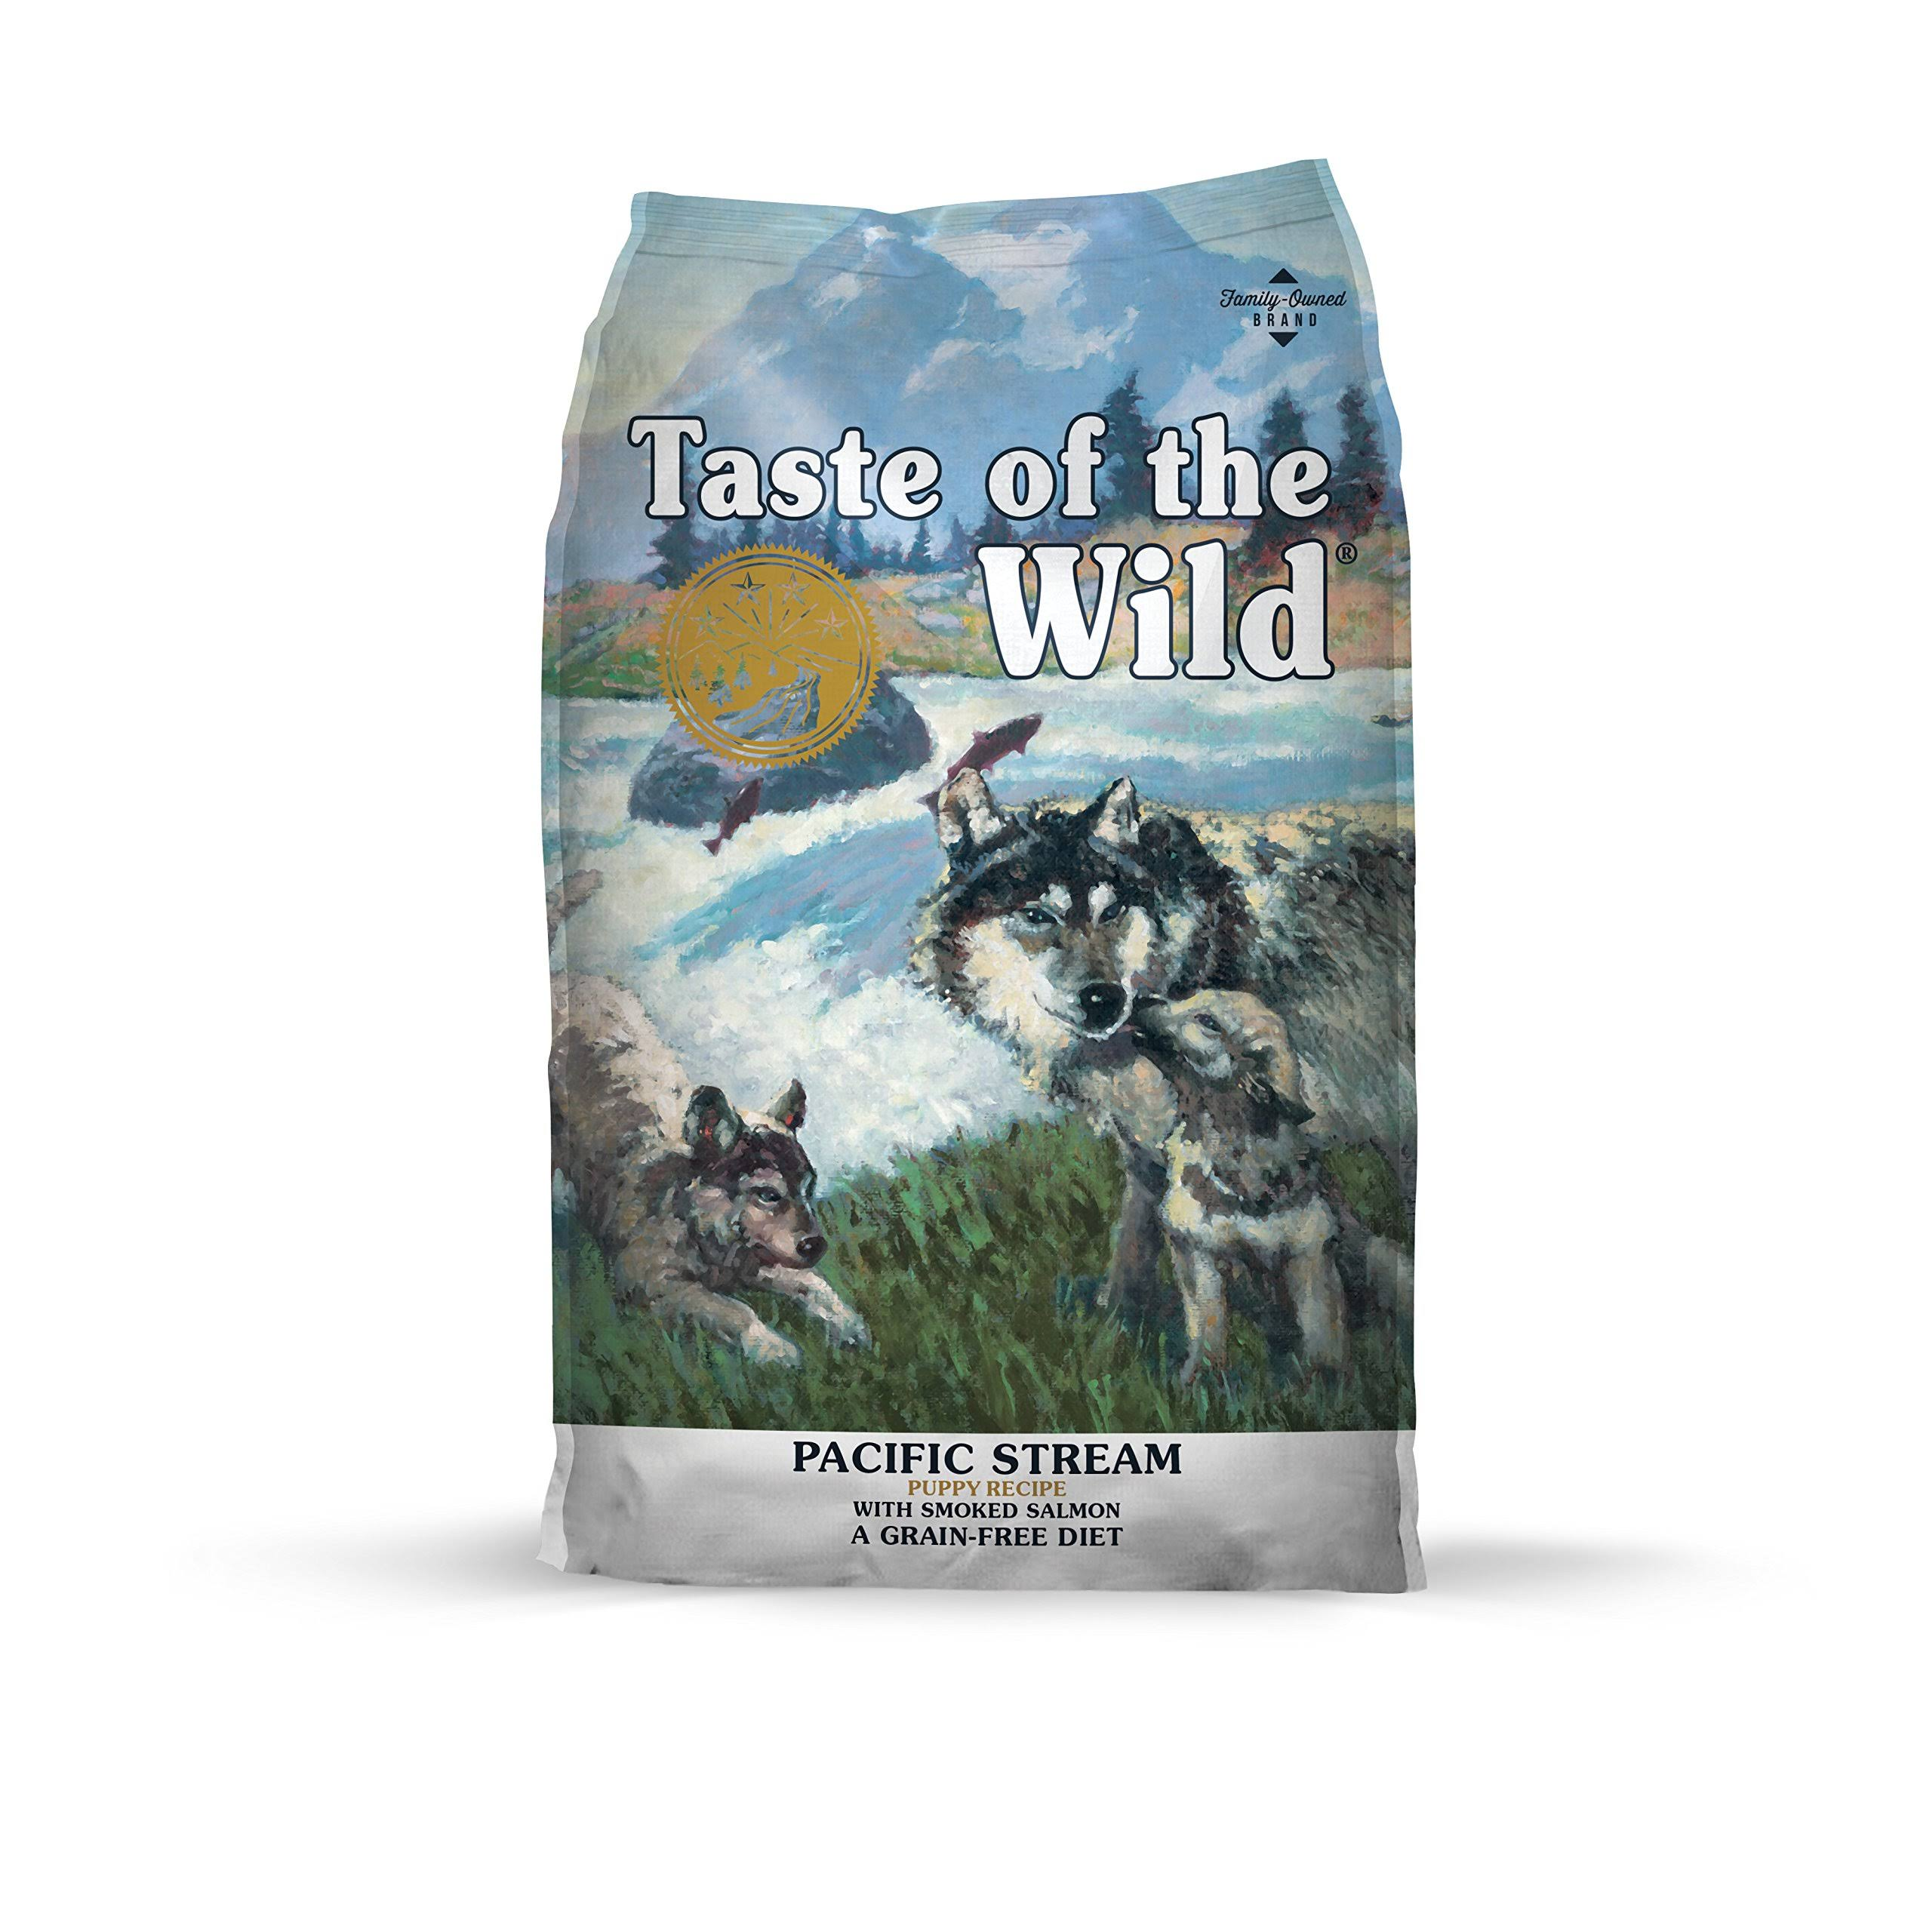 Taste of the Wild Pacific Stream Grain-Free Puppy Food - 5lb